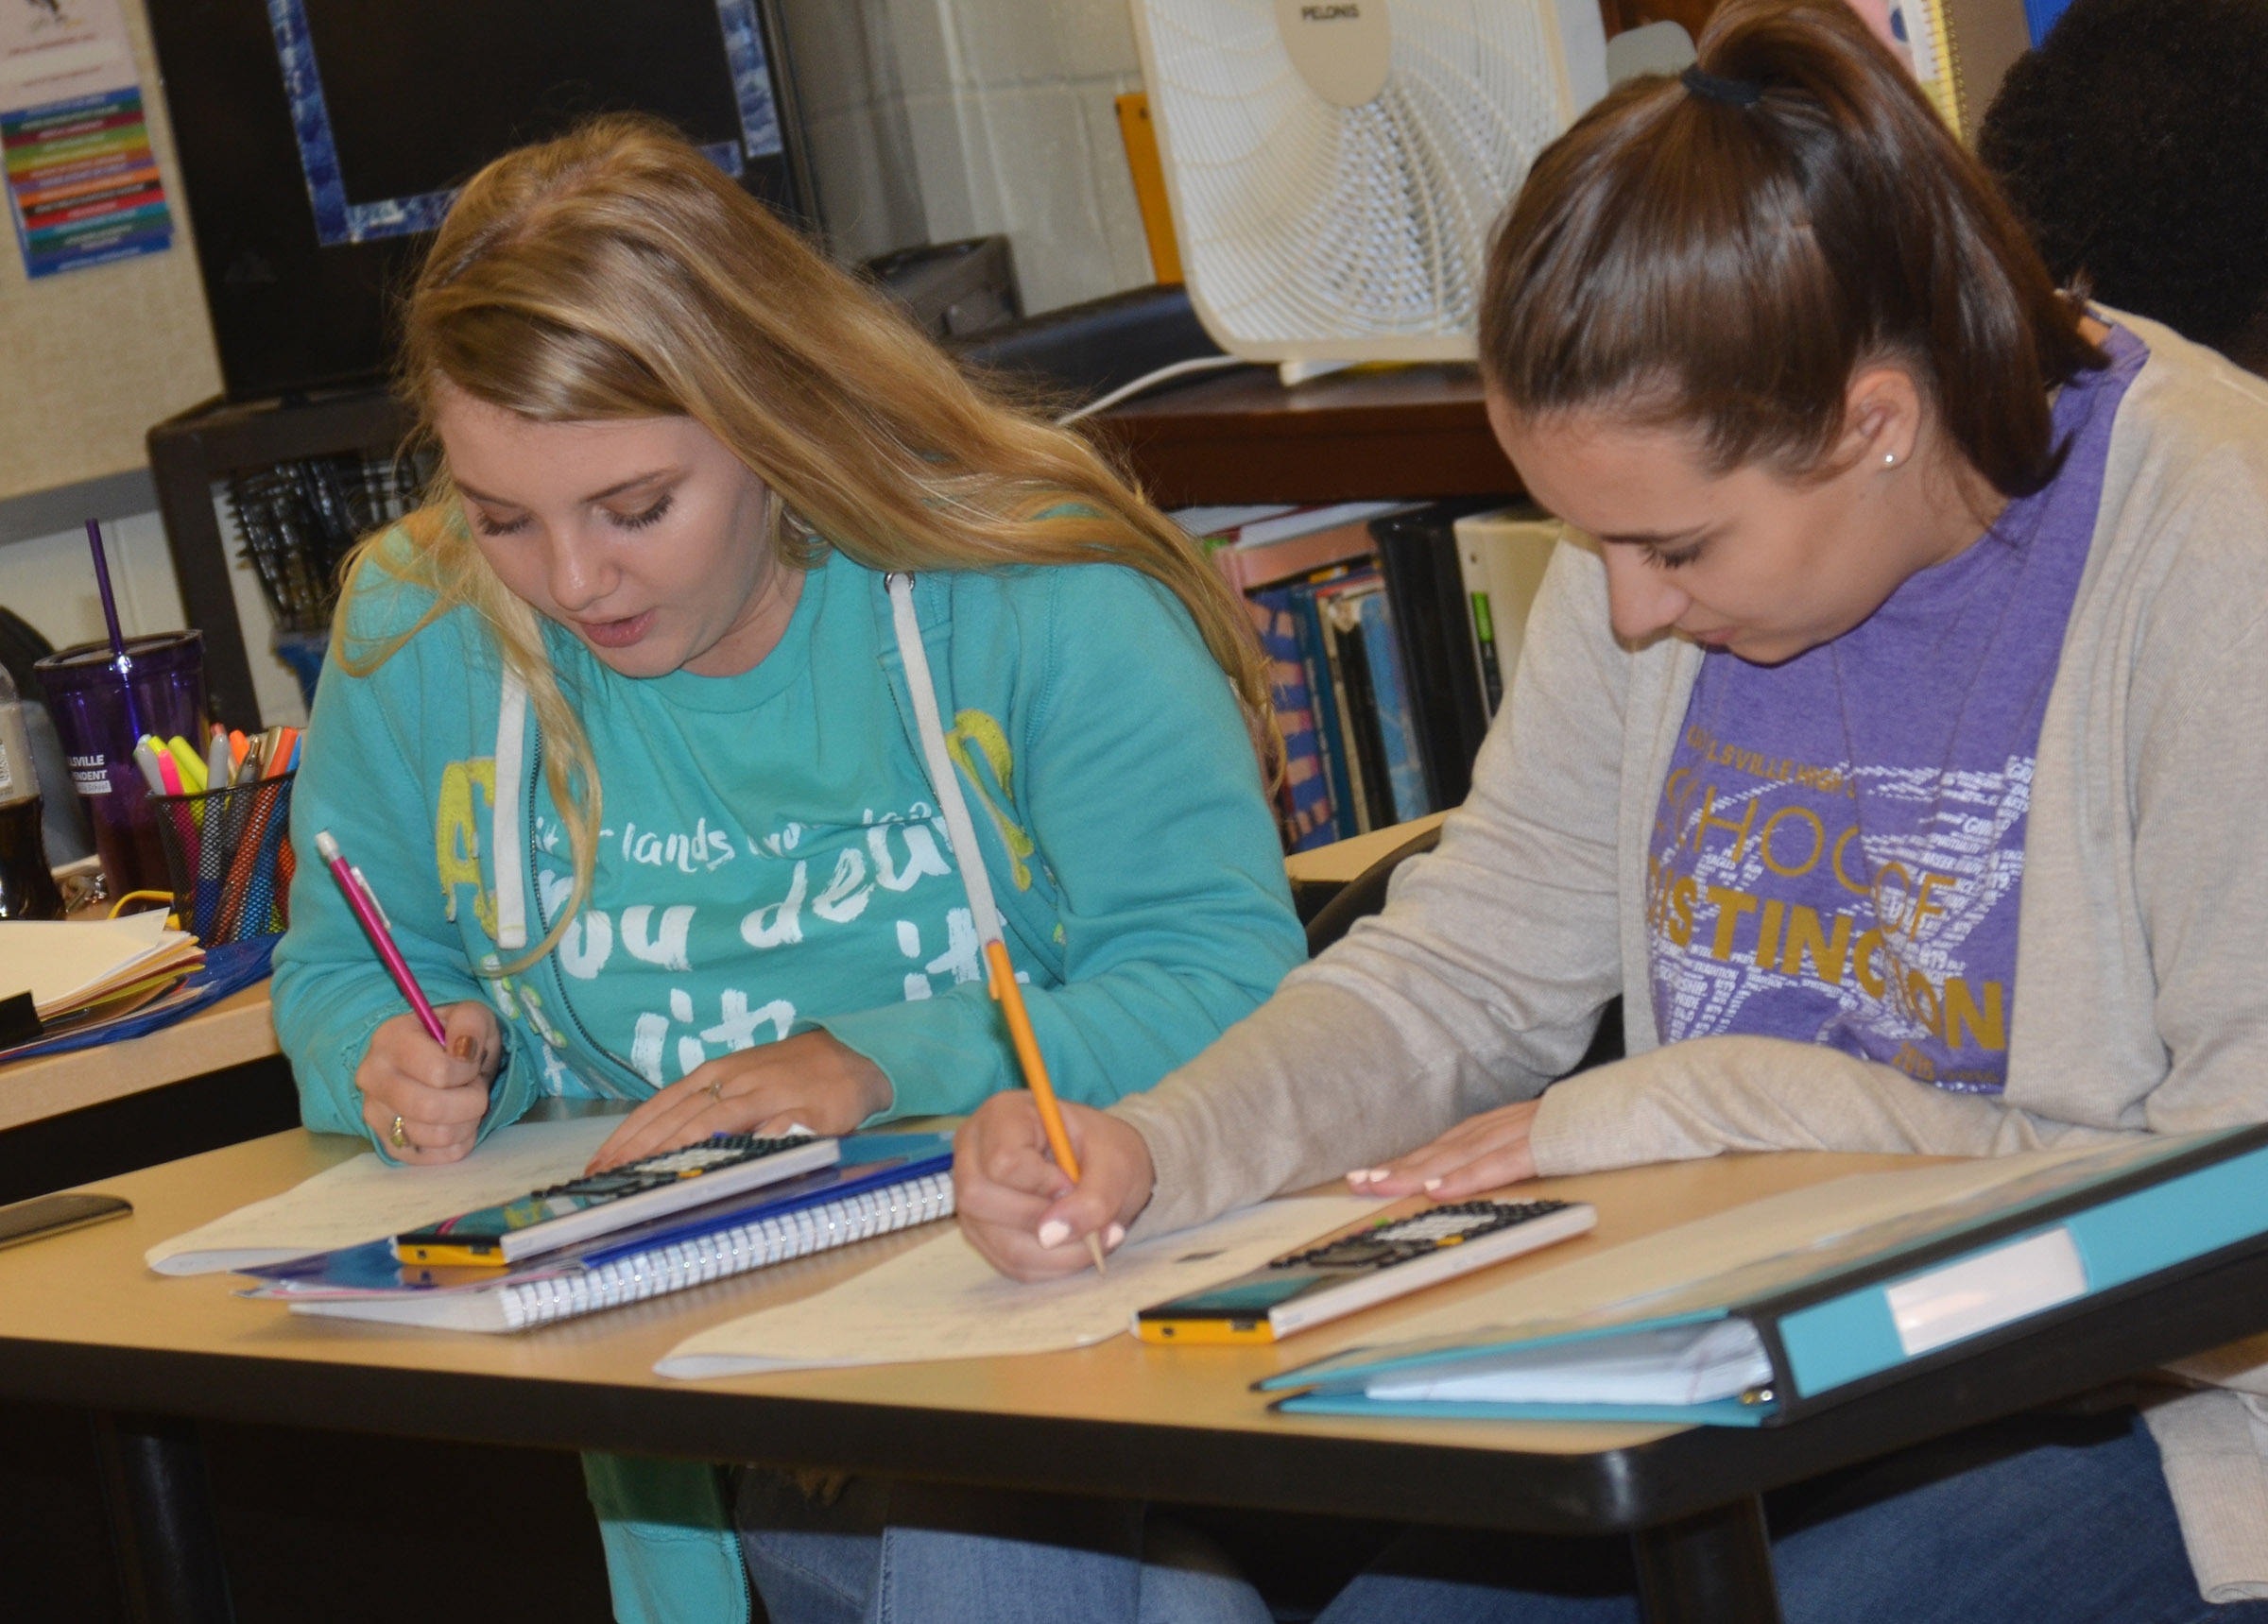 CHS juniors Hayley Stapleton, at left, and Elizabeth Sullivan complete some math problems.